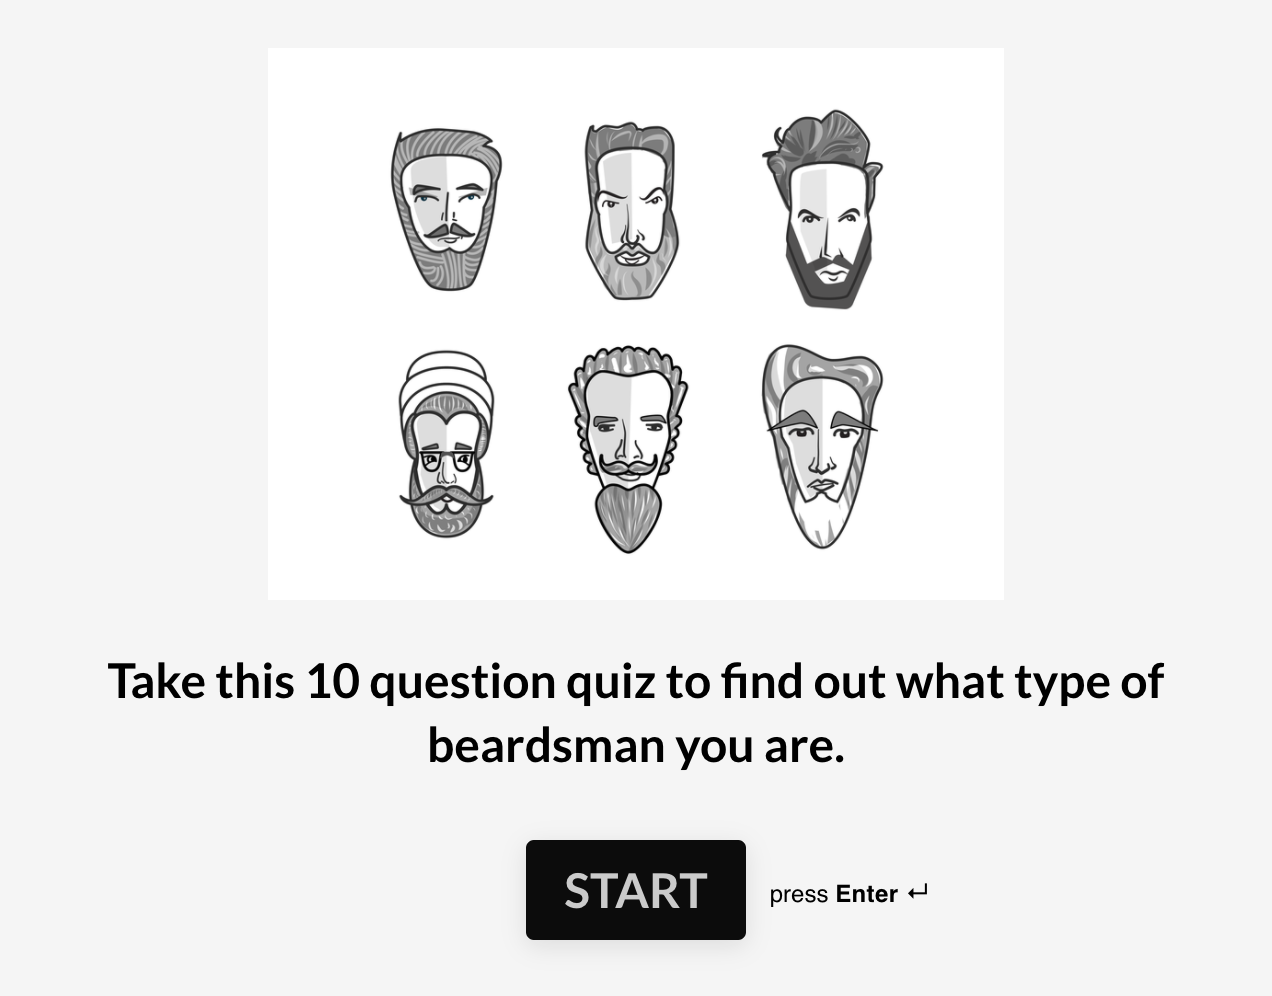 A Typeform quiz from Beardbrand